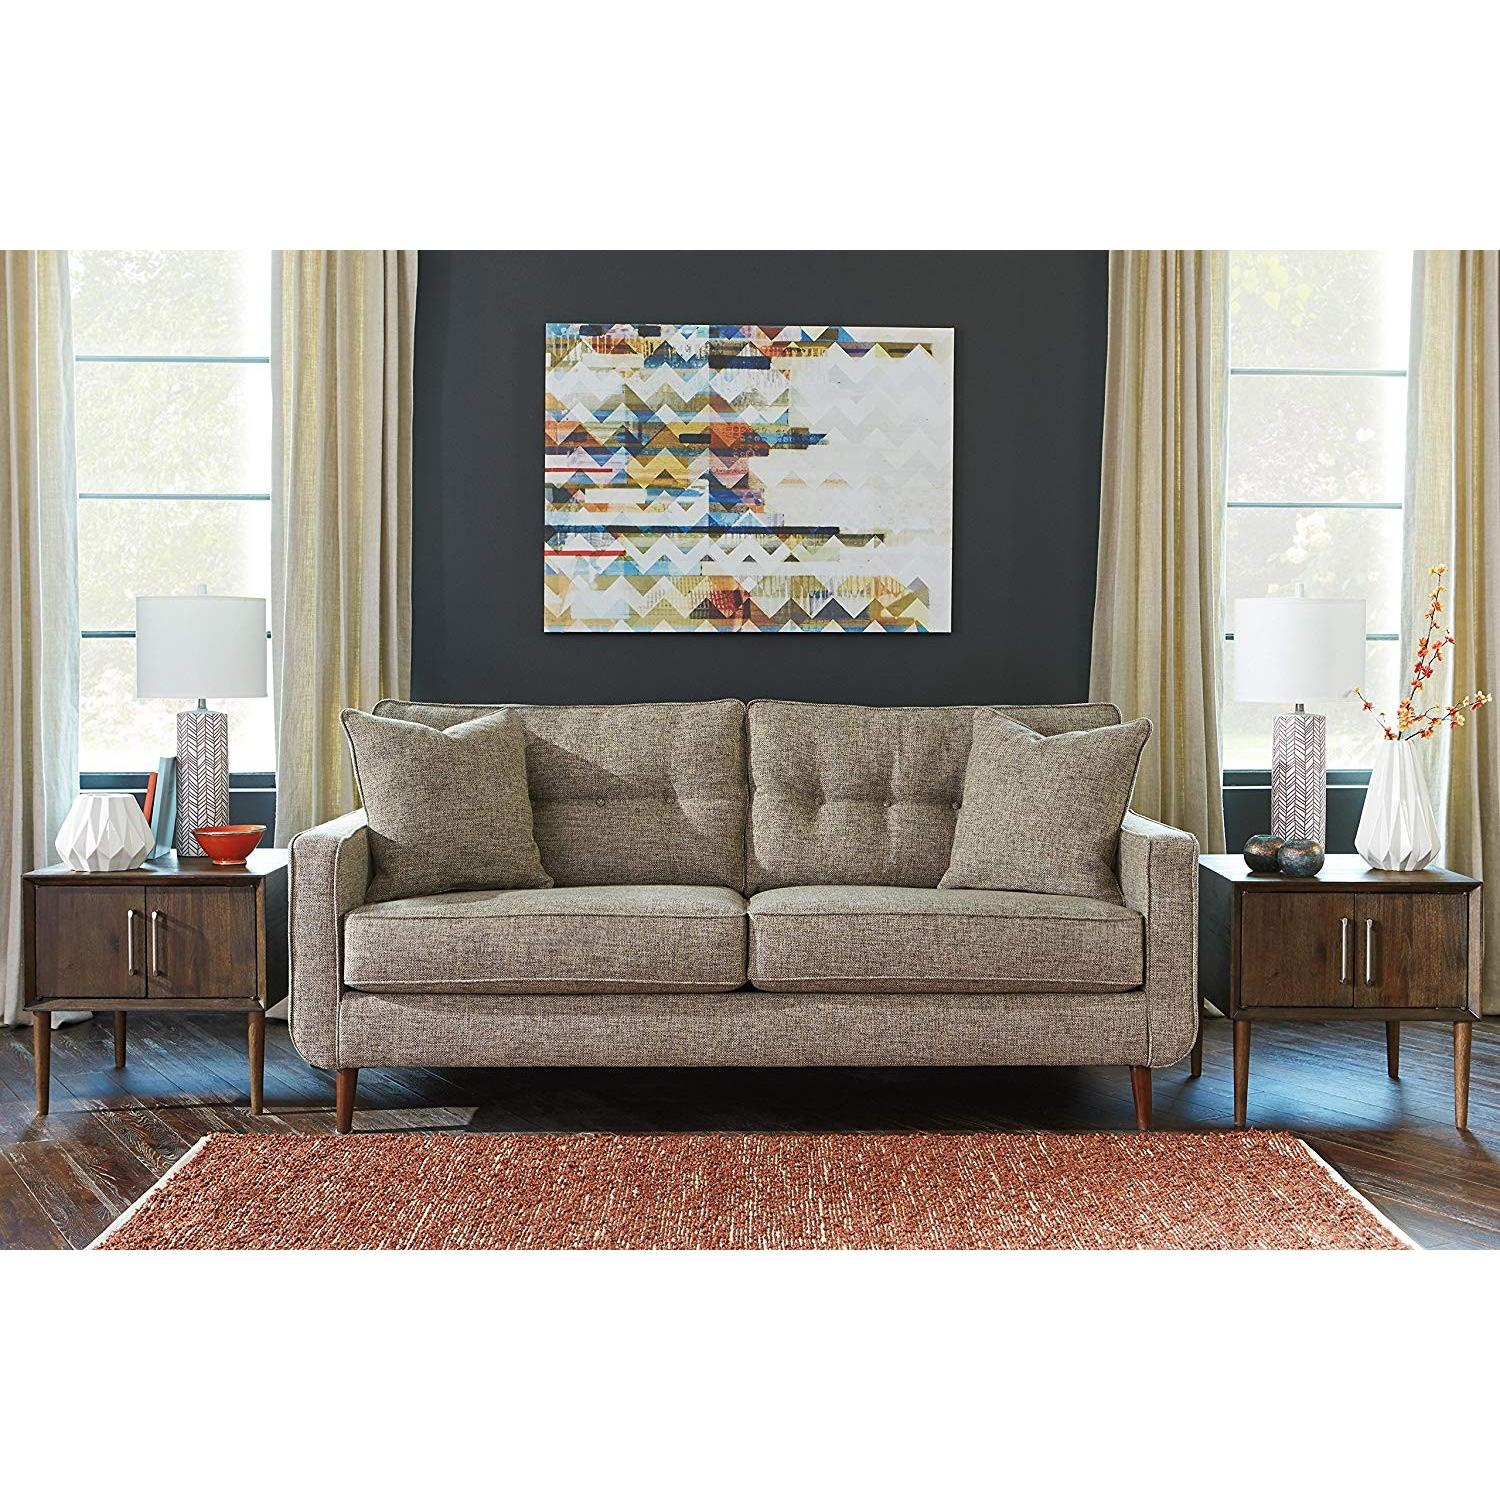 Ashley Chento Jute Sofa in Beige/Natural - image-5